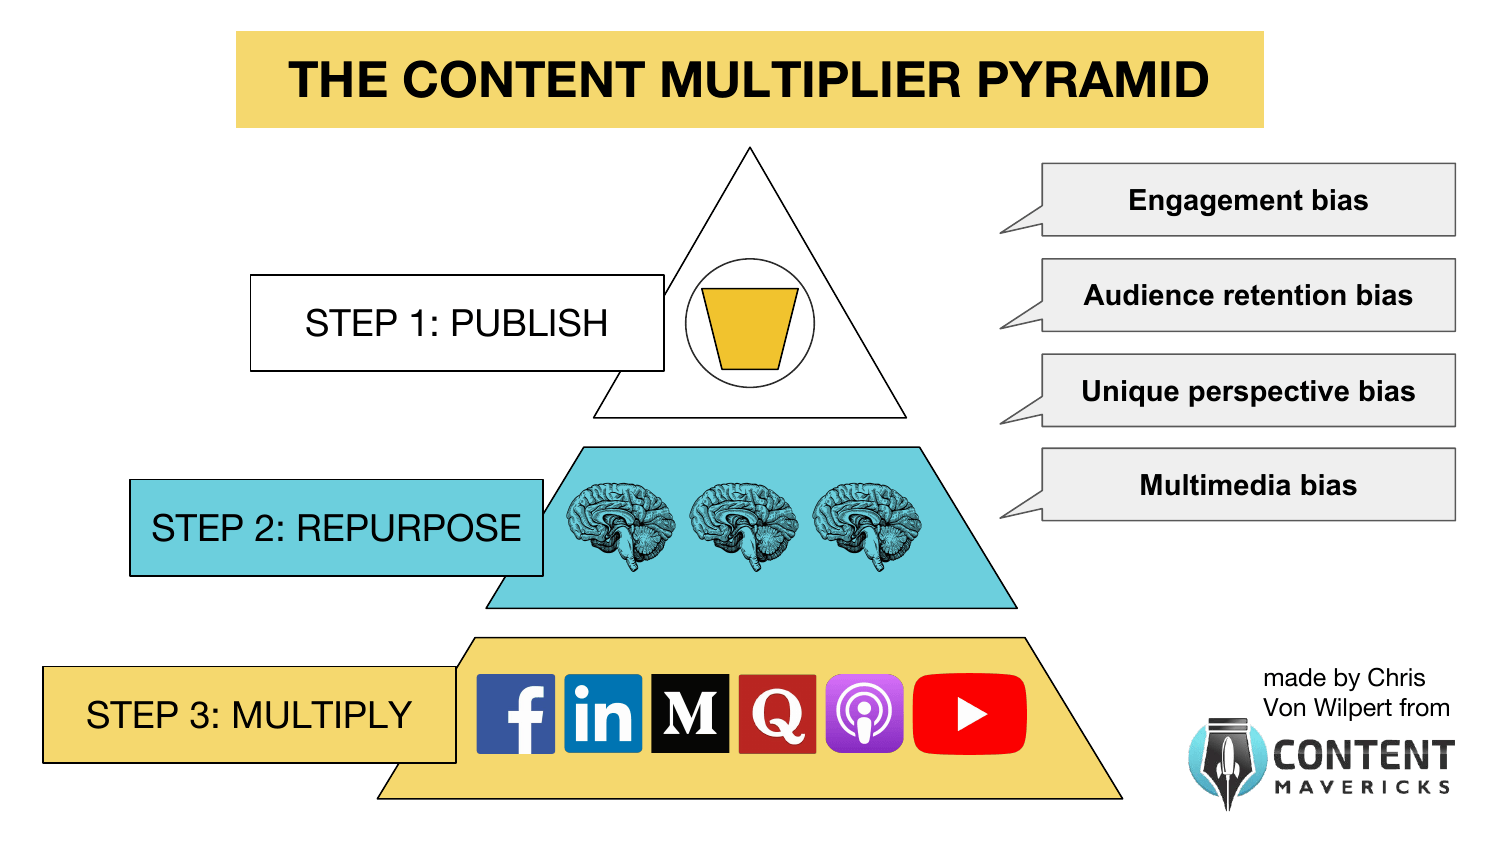 content multiplier pyramid biases image